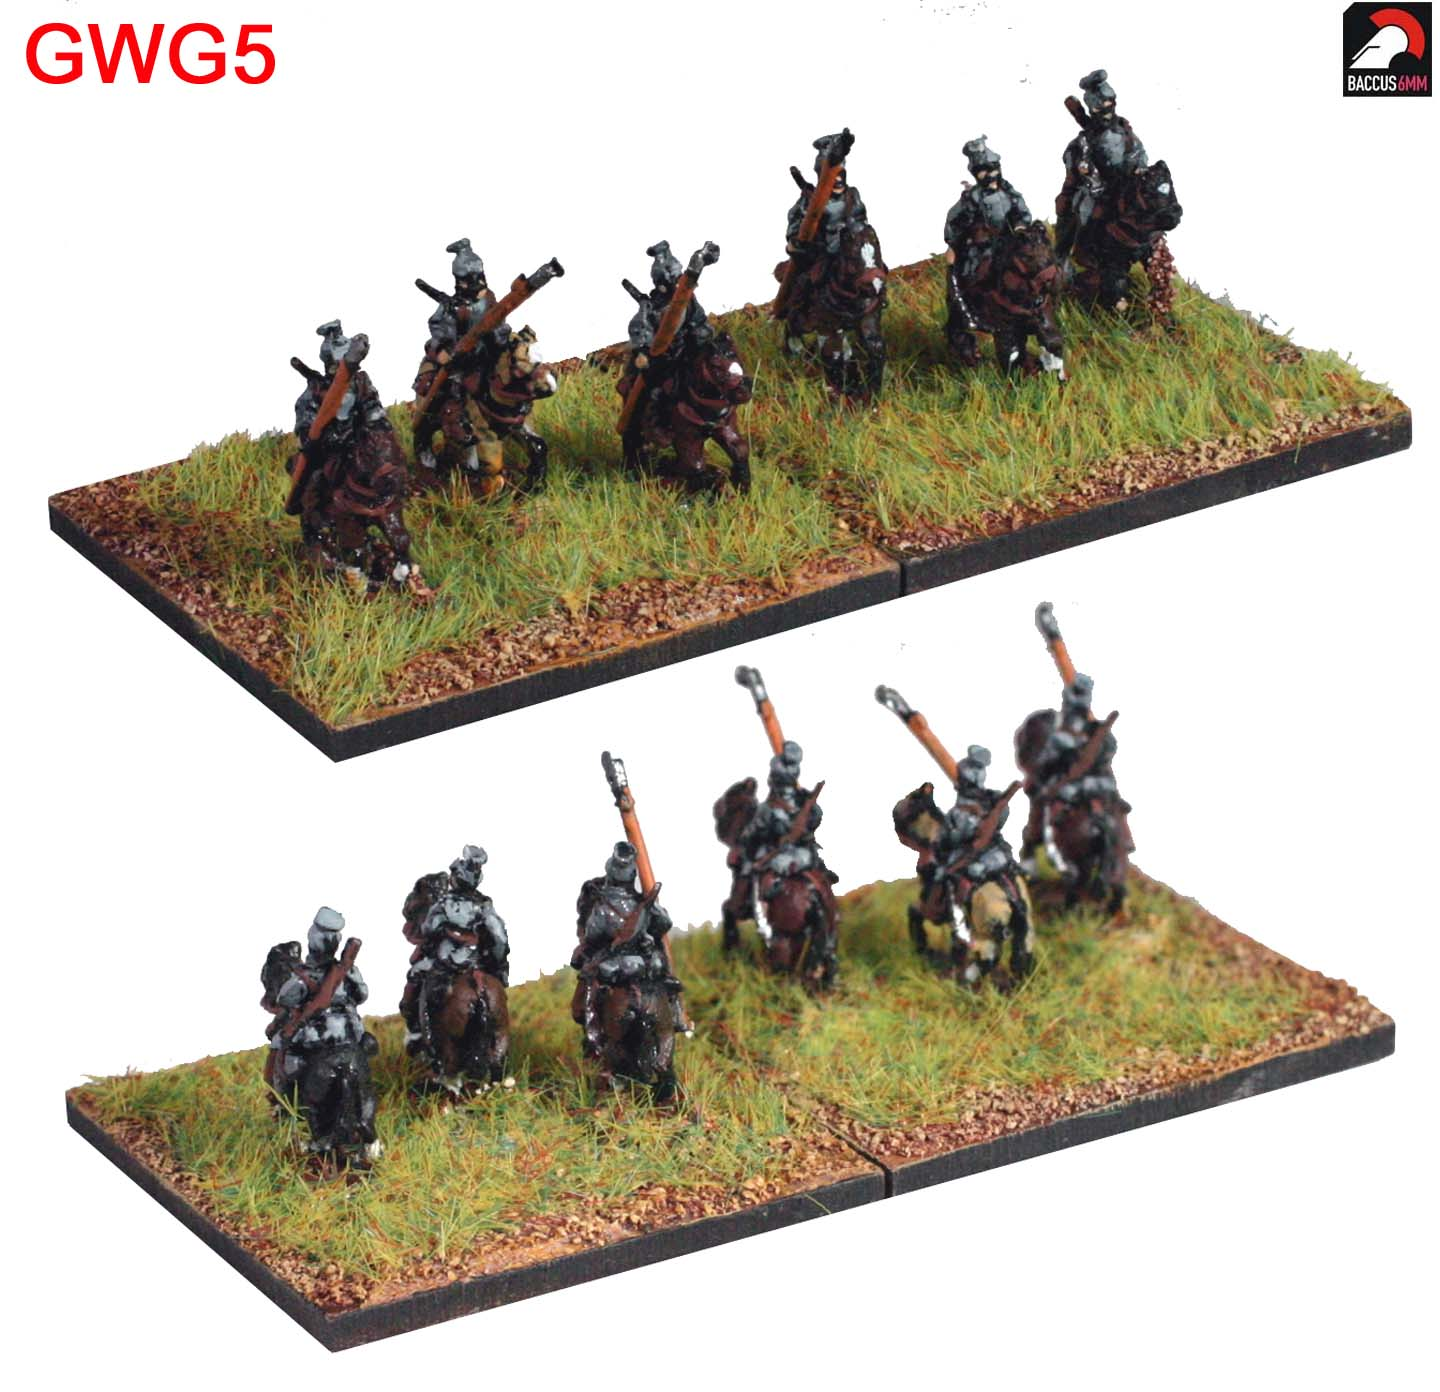 https://www.baccus6mm.com/includes/products/ww1/images/german/gwg5.jpg